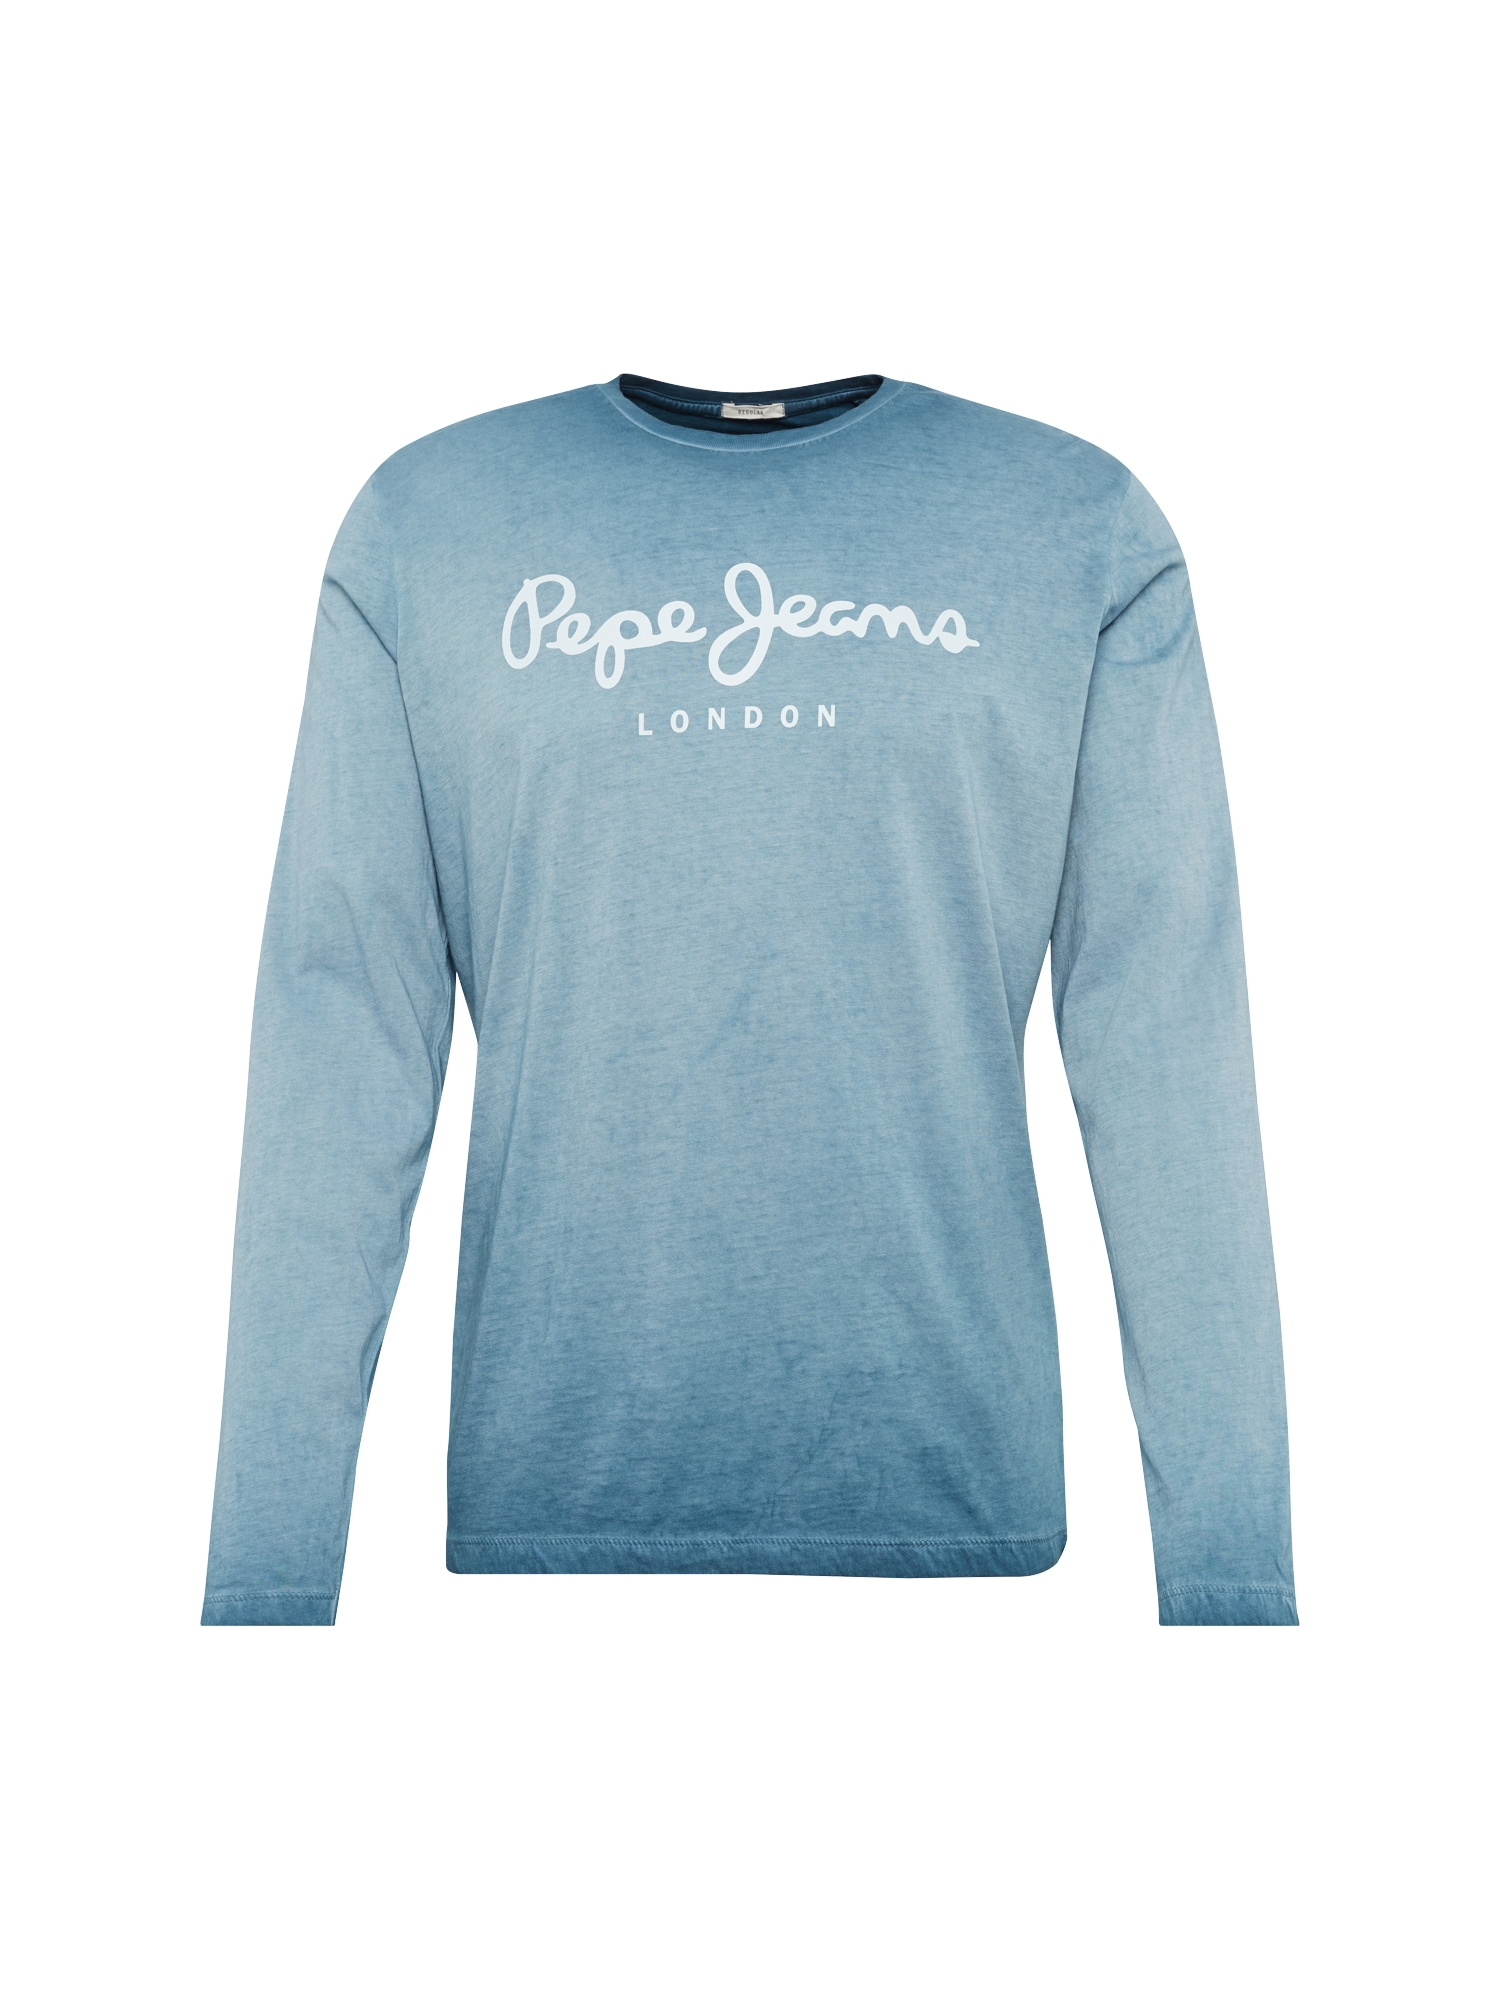 Pepe Jeans Heren Shirt WEST SIR II L S blauw wit